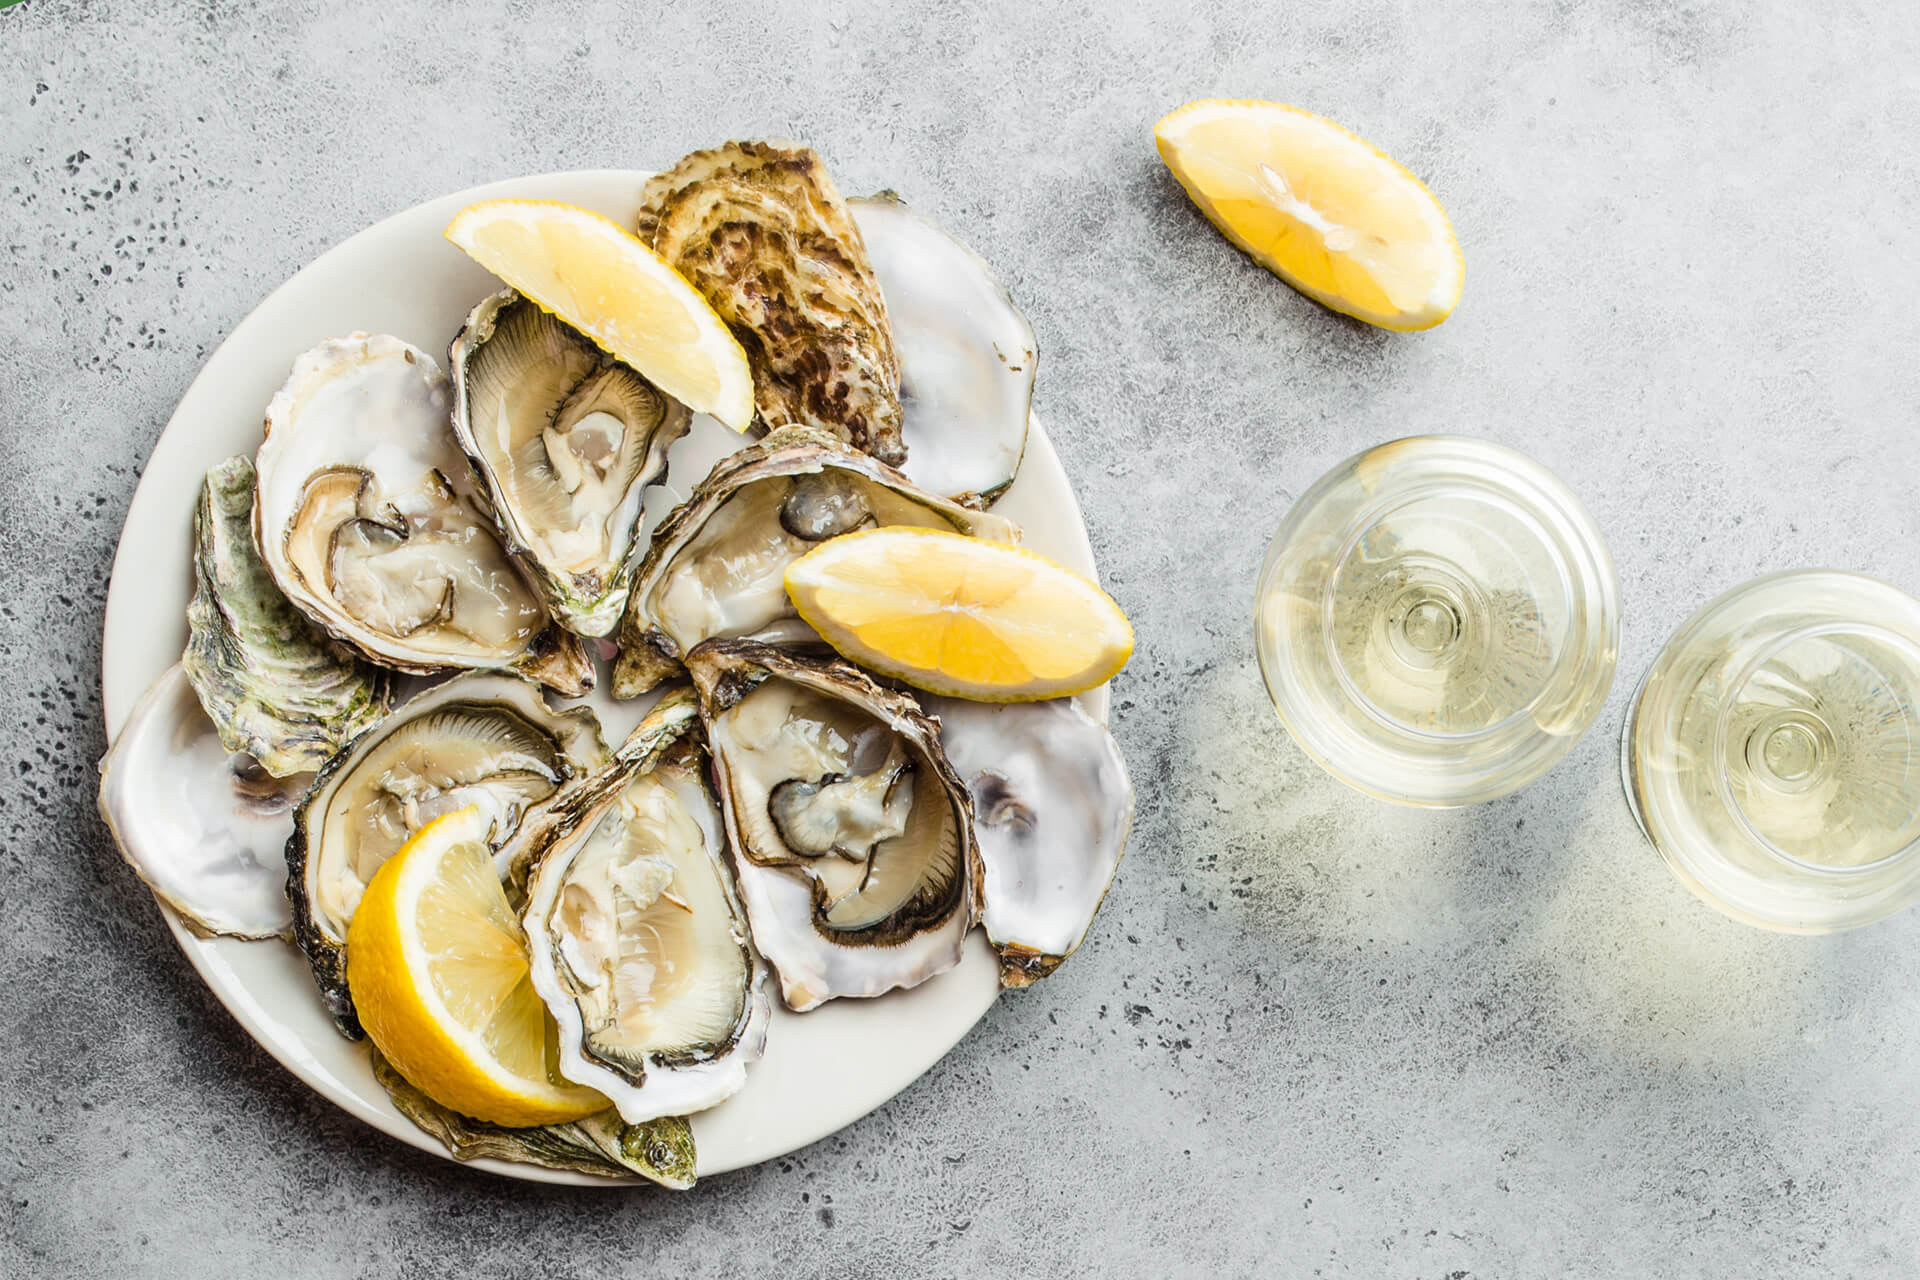 Close-up of half dozen of fresh opened oysters and shells with lemon wedges on a plate, two glasses of white wine, top view, grey rustic concrete background, space for text